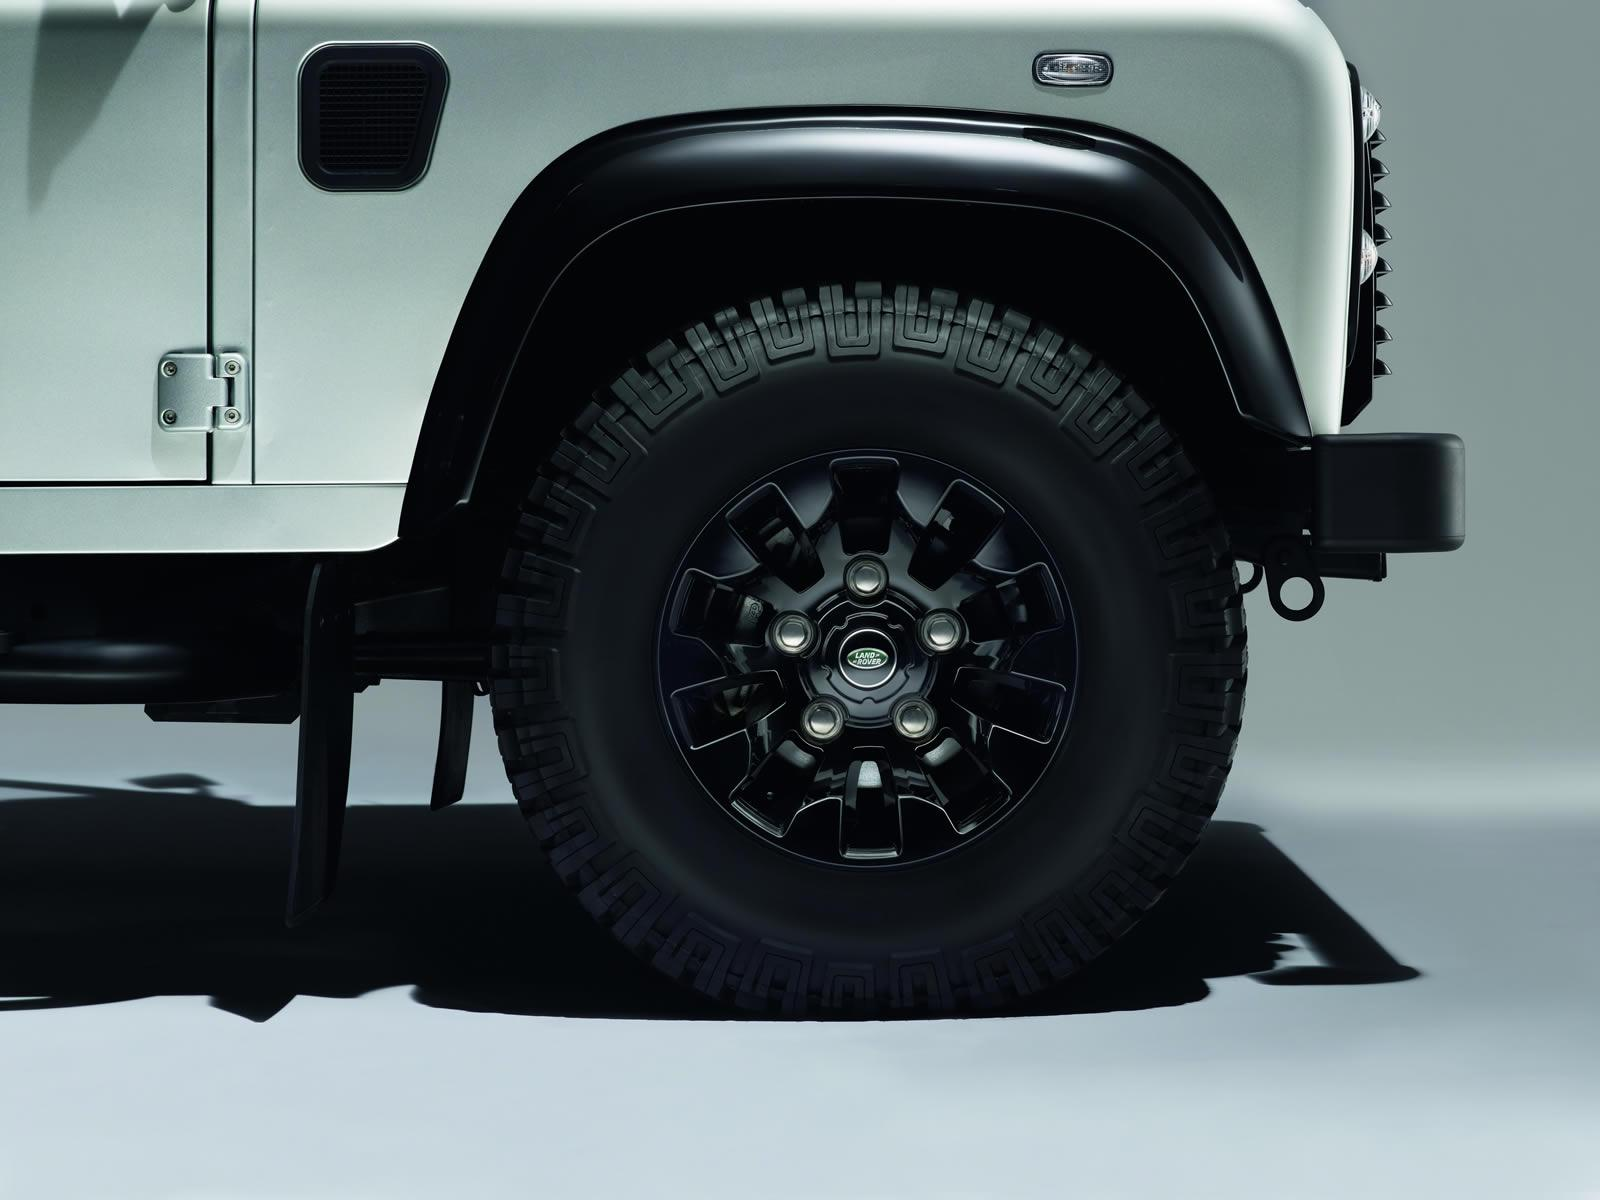 Land Rover Defender Black Pack saw tooth alloy